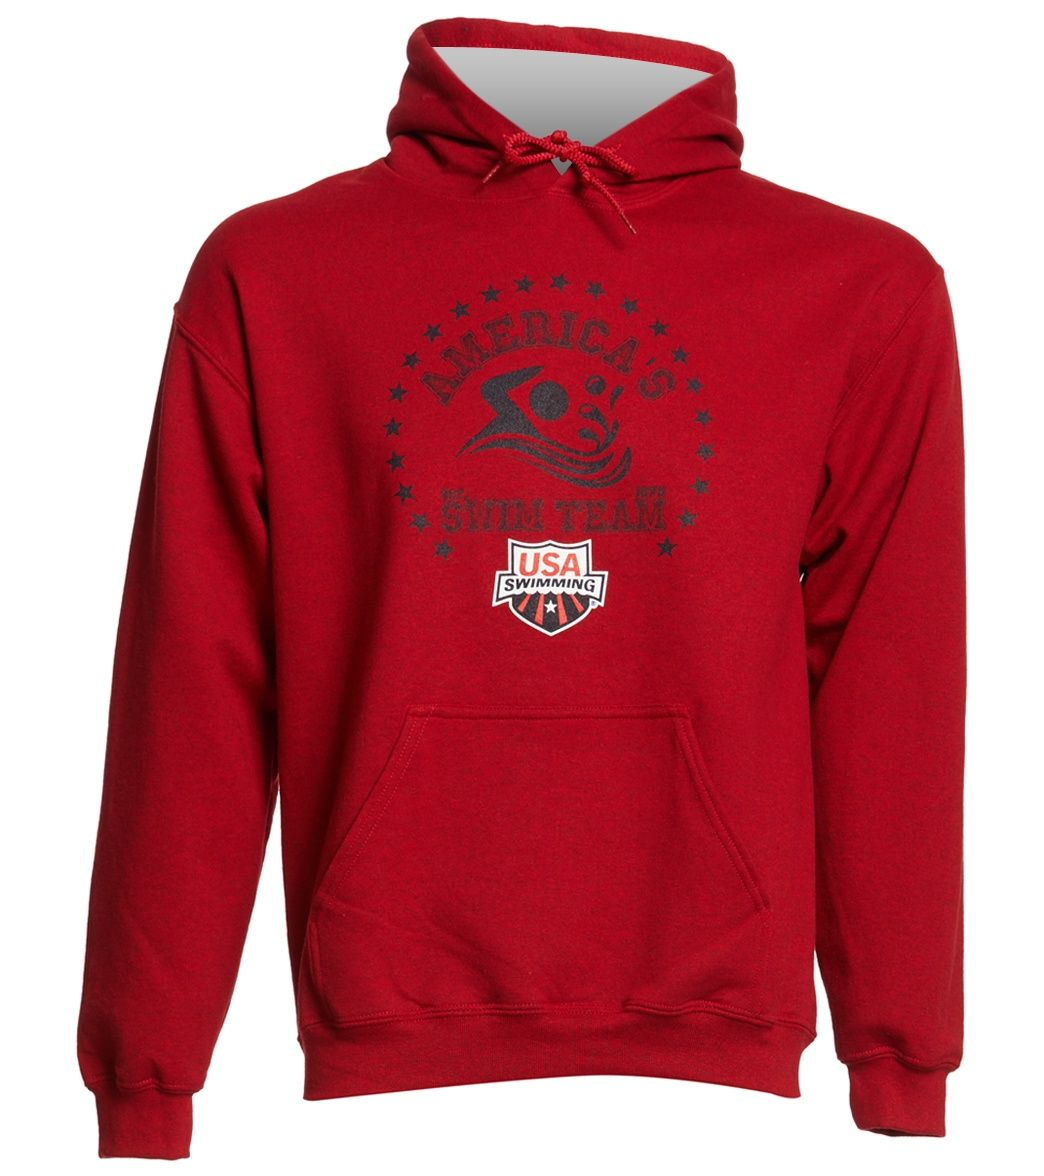 12f19b5ee918 USA Swimming Unisex Team Pullover Hoodie at SwimOutlet.com